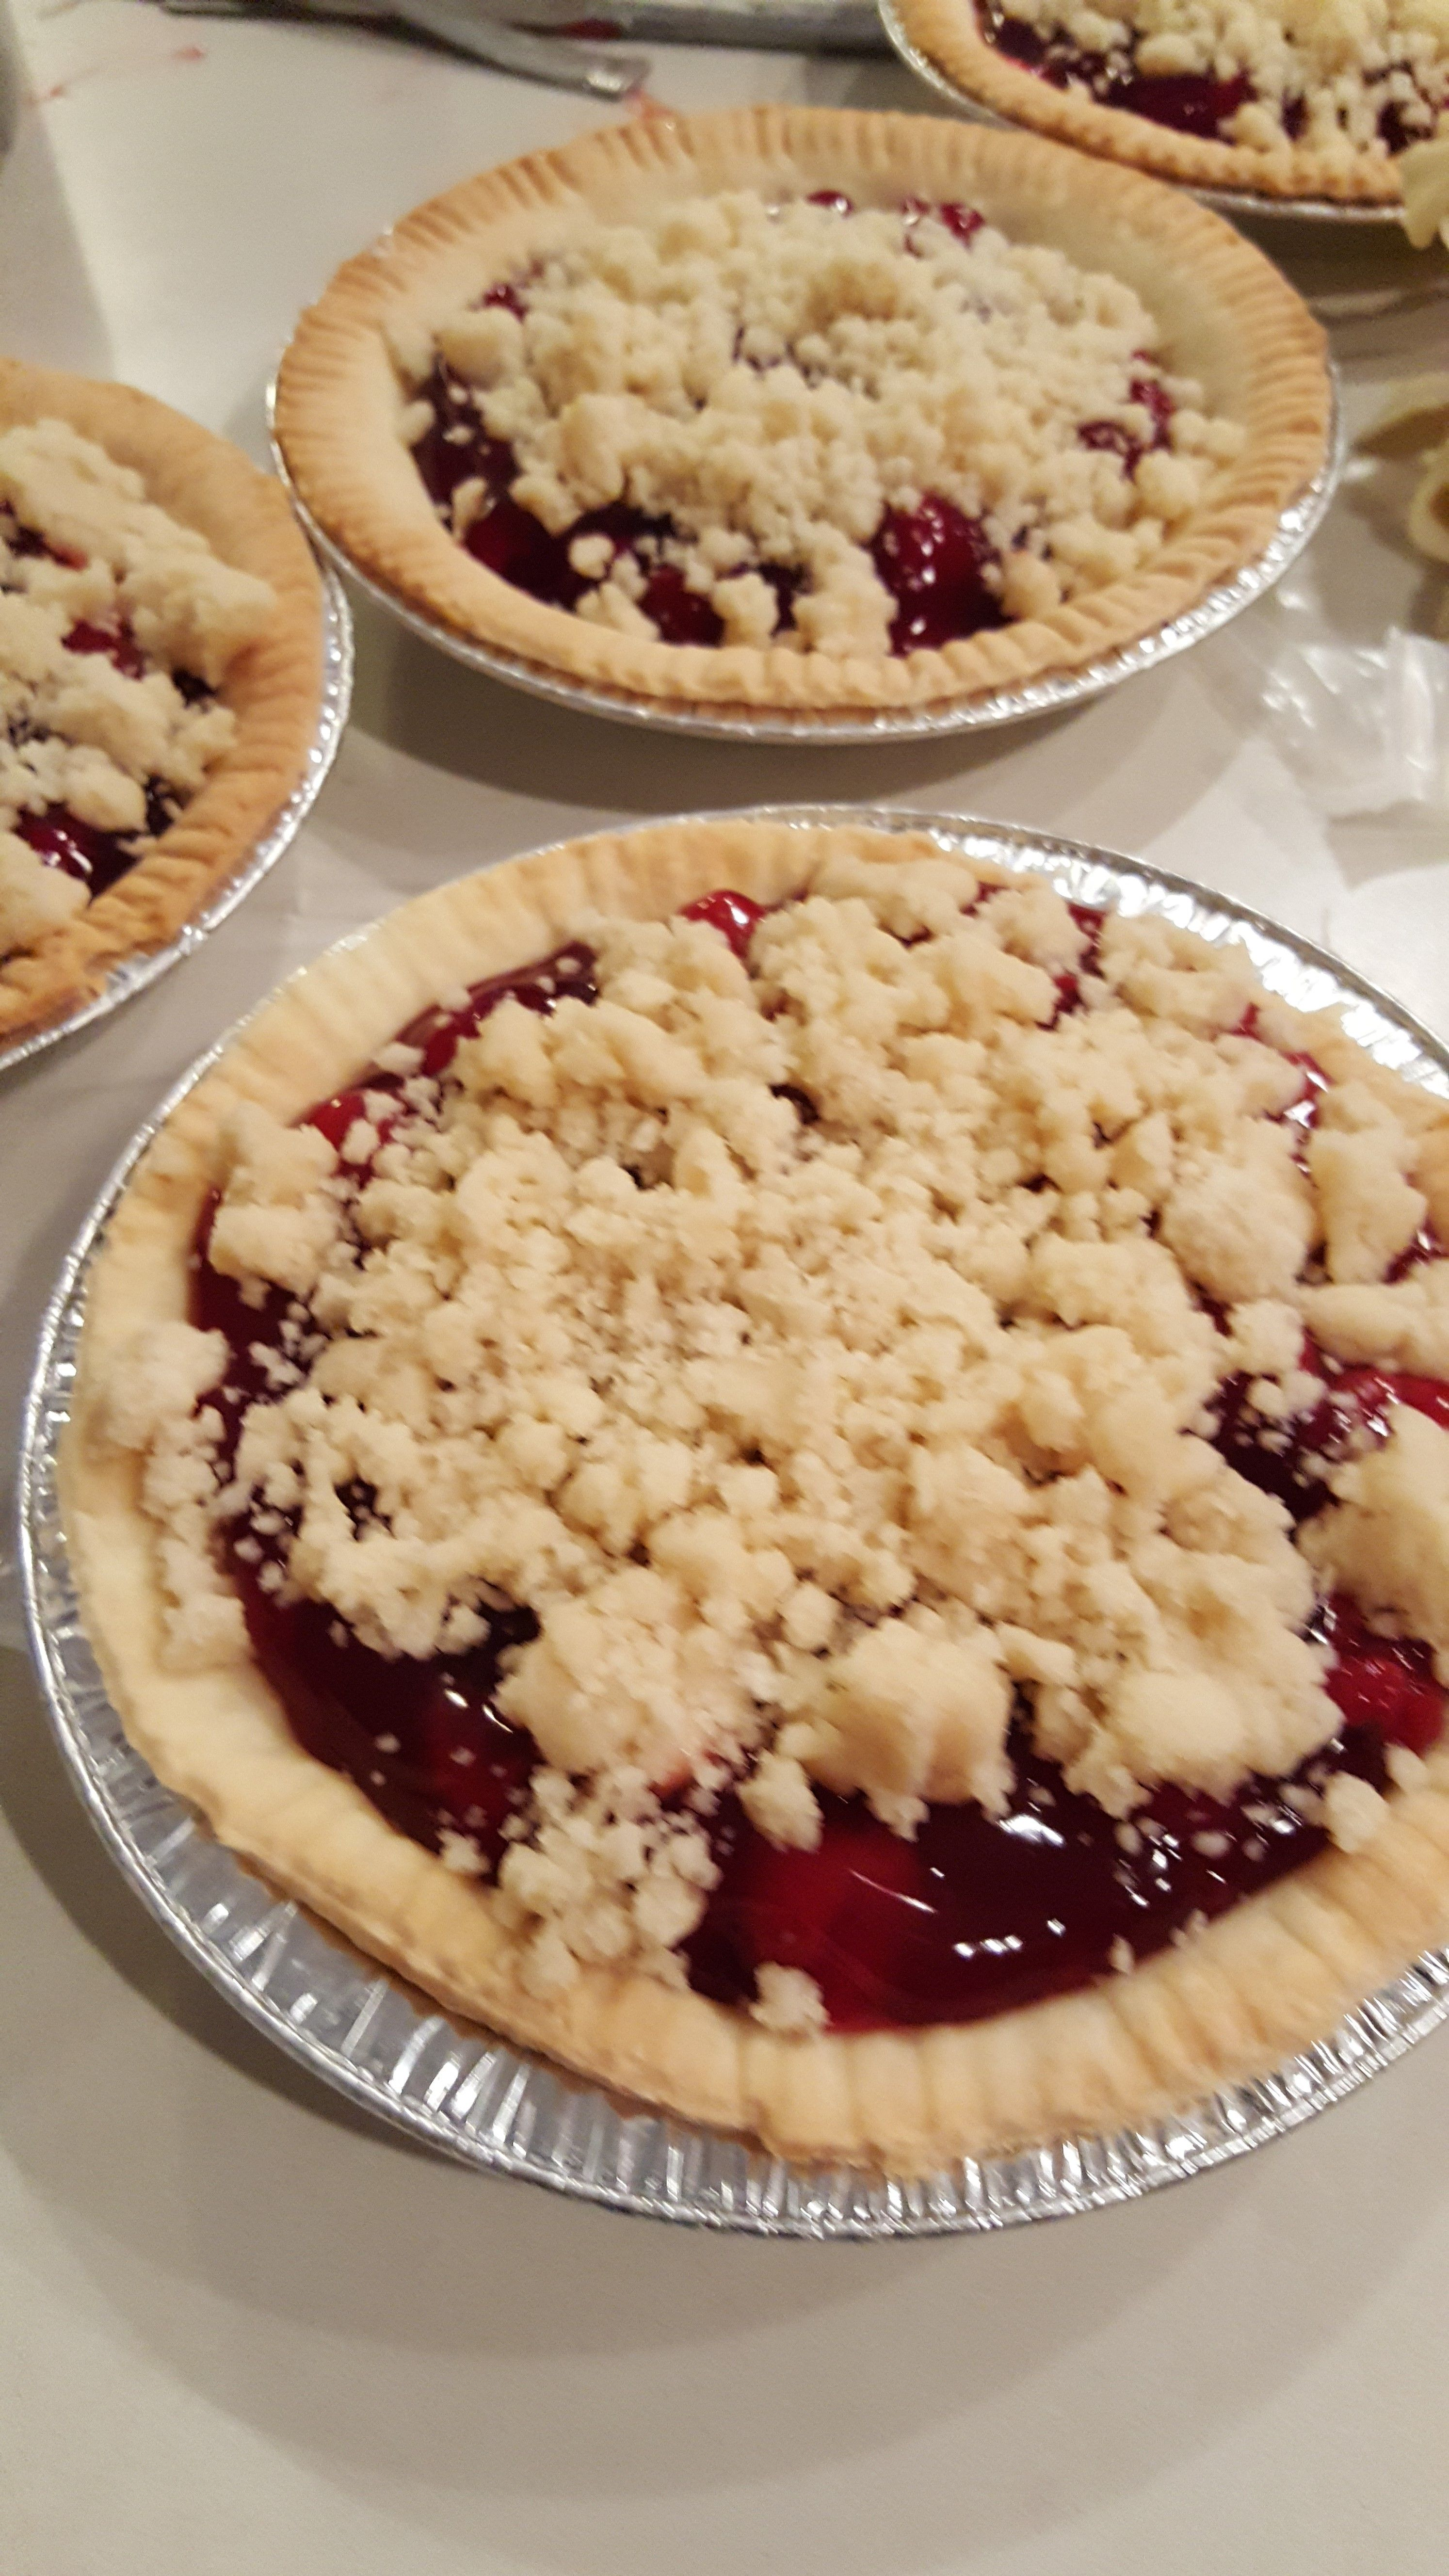 HOMEMADE CHERRY CRUMB PIES! Our Bake Sales Have Something